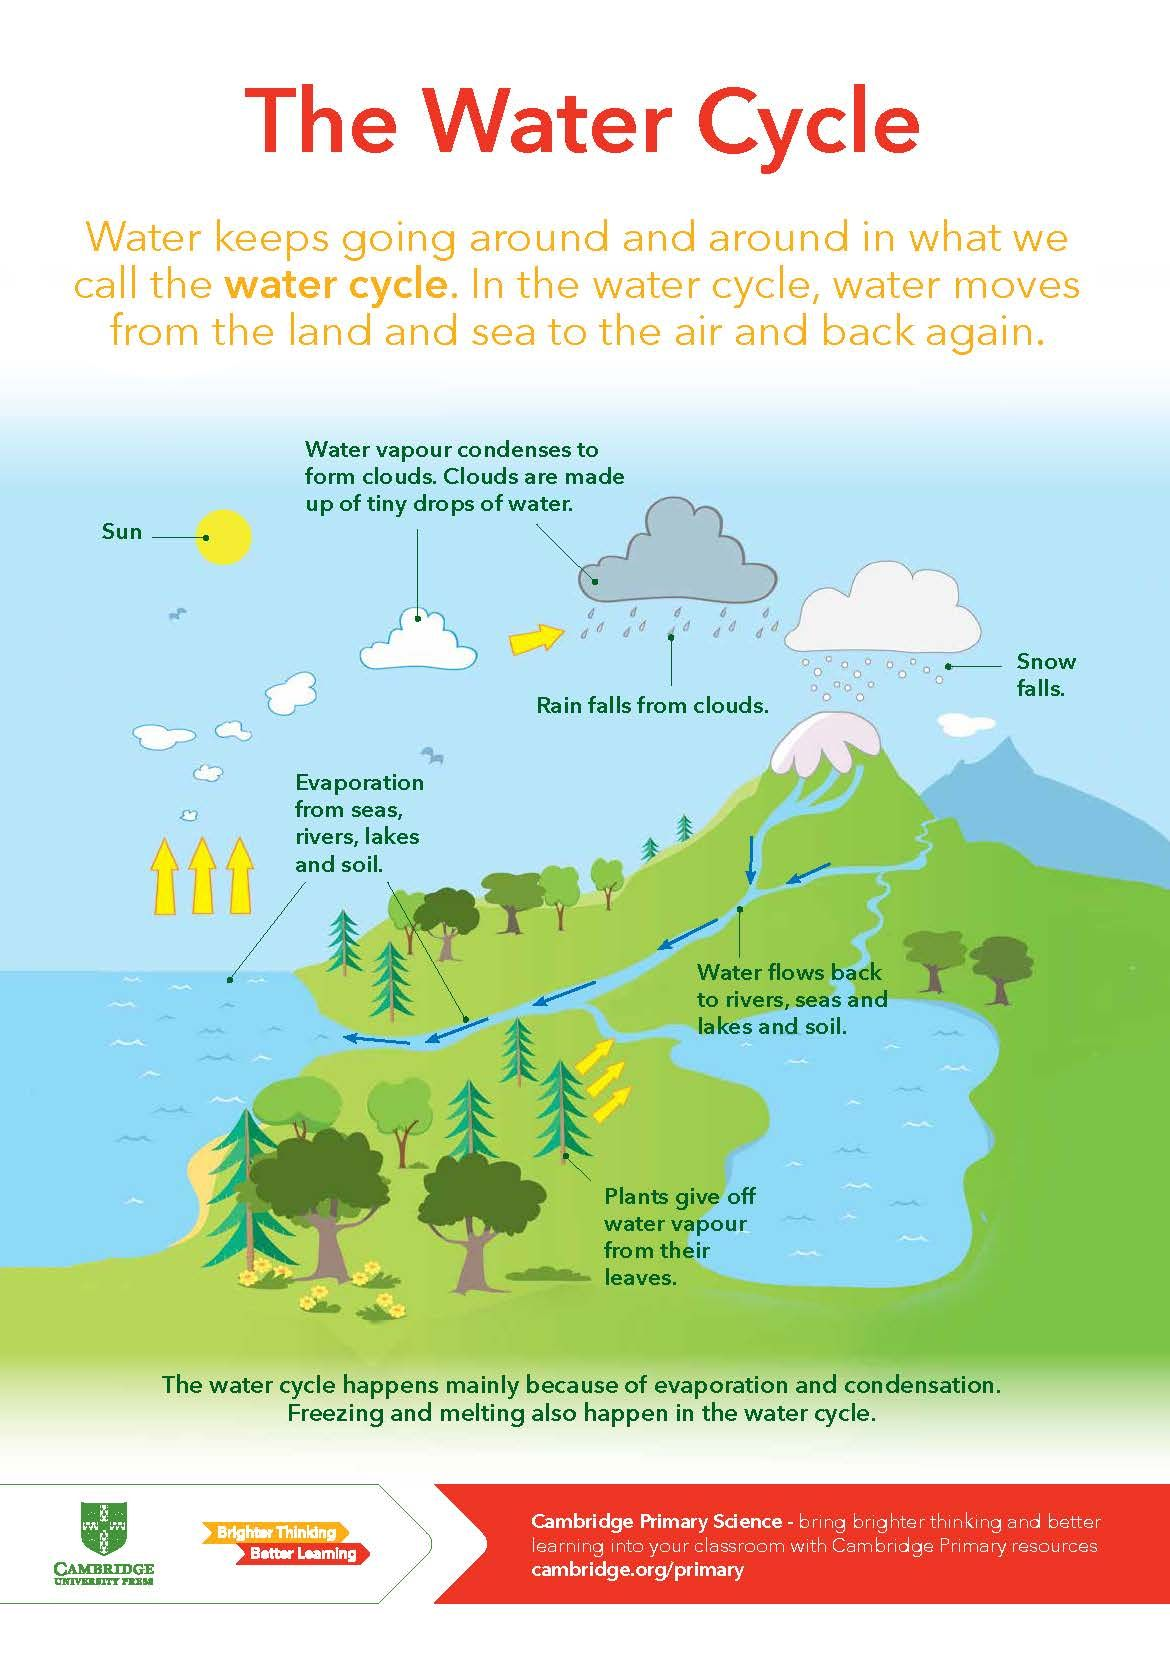 small resolution of Cambridge Primary Science - The Water Cycle   Cambridge primary